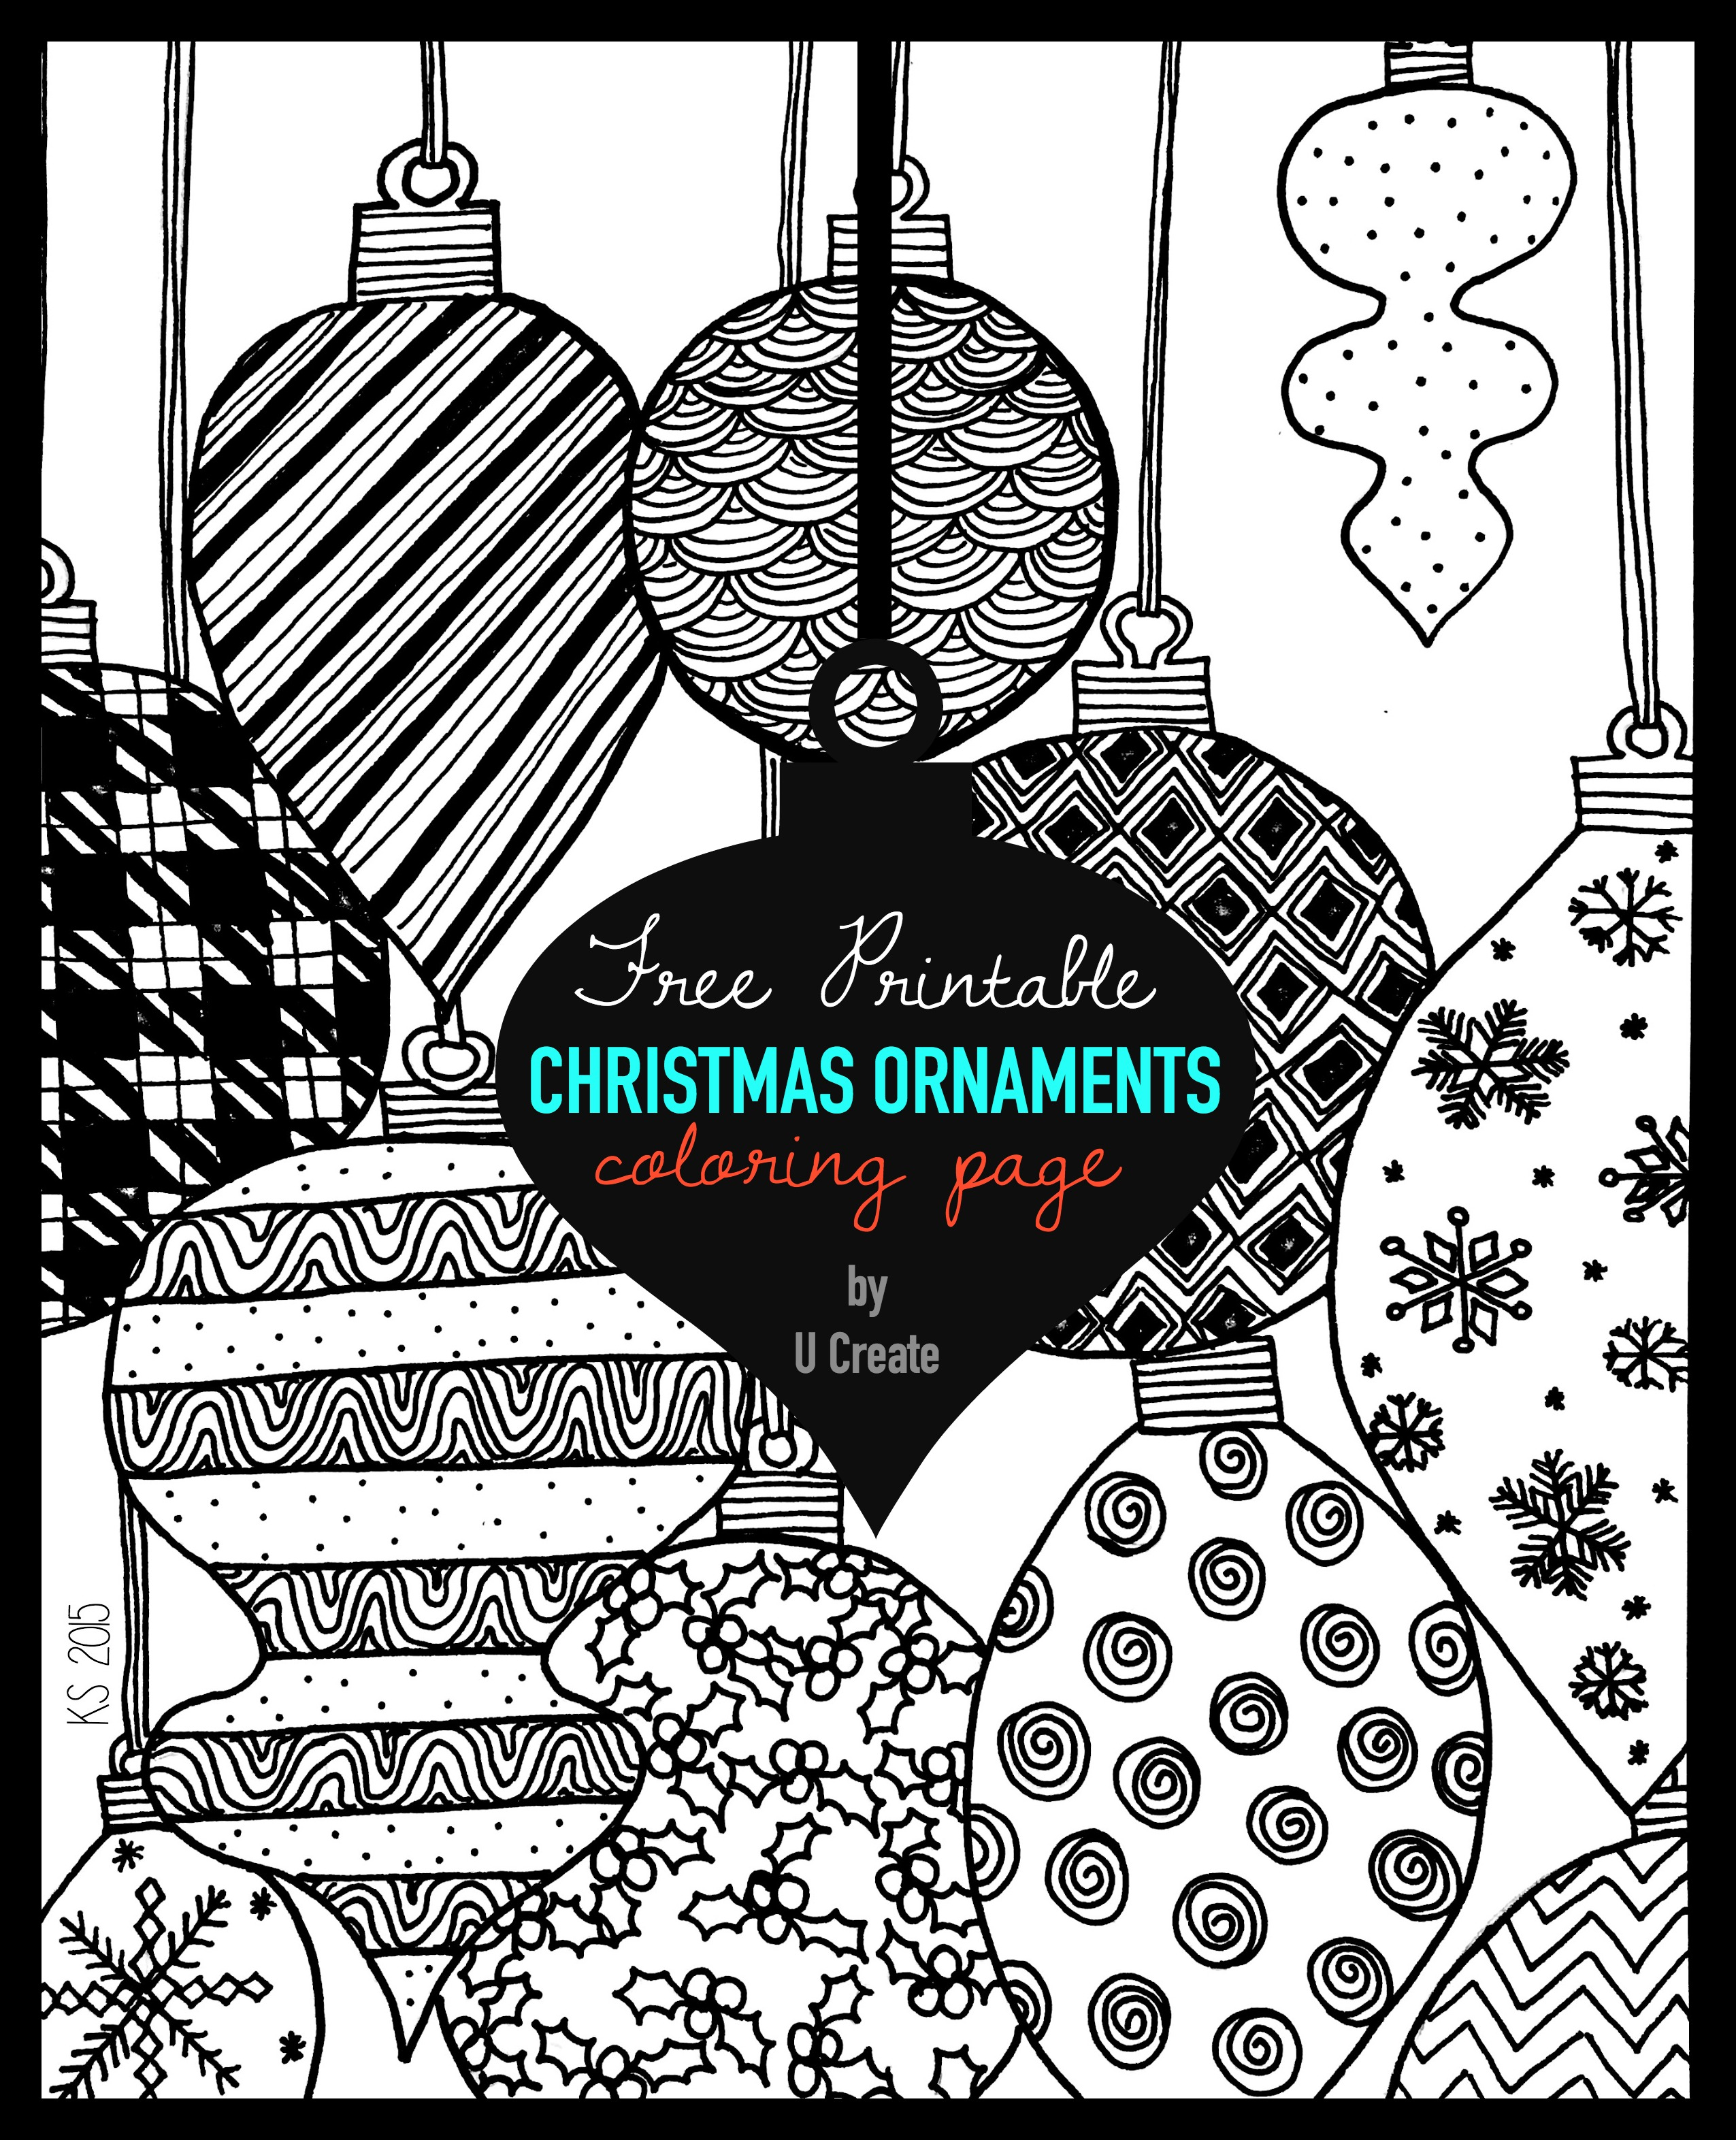 Christmas Decorations Coloring Pages With Ornaments Adult Page U Create